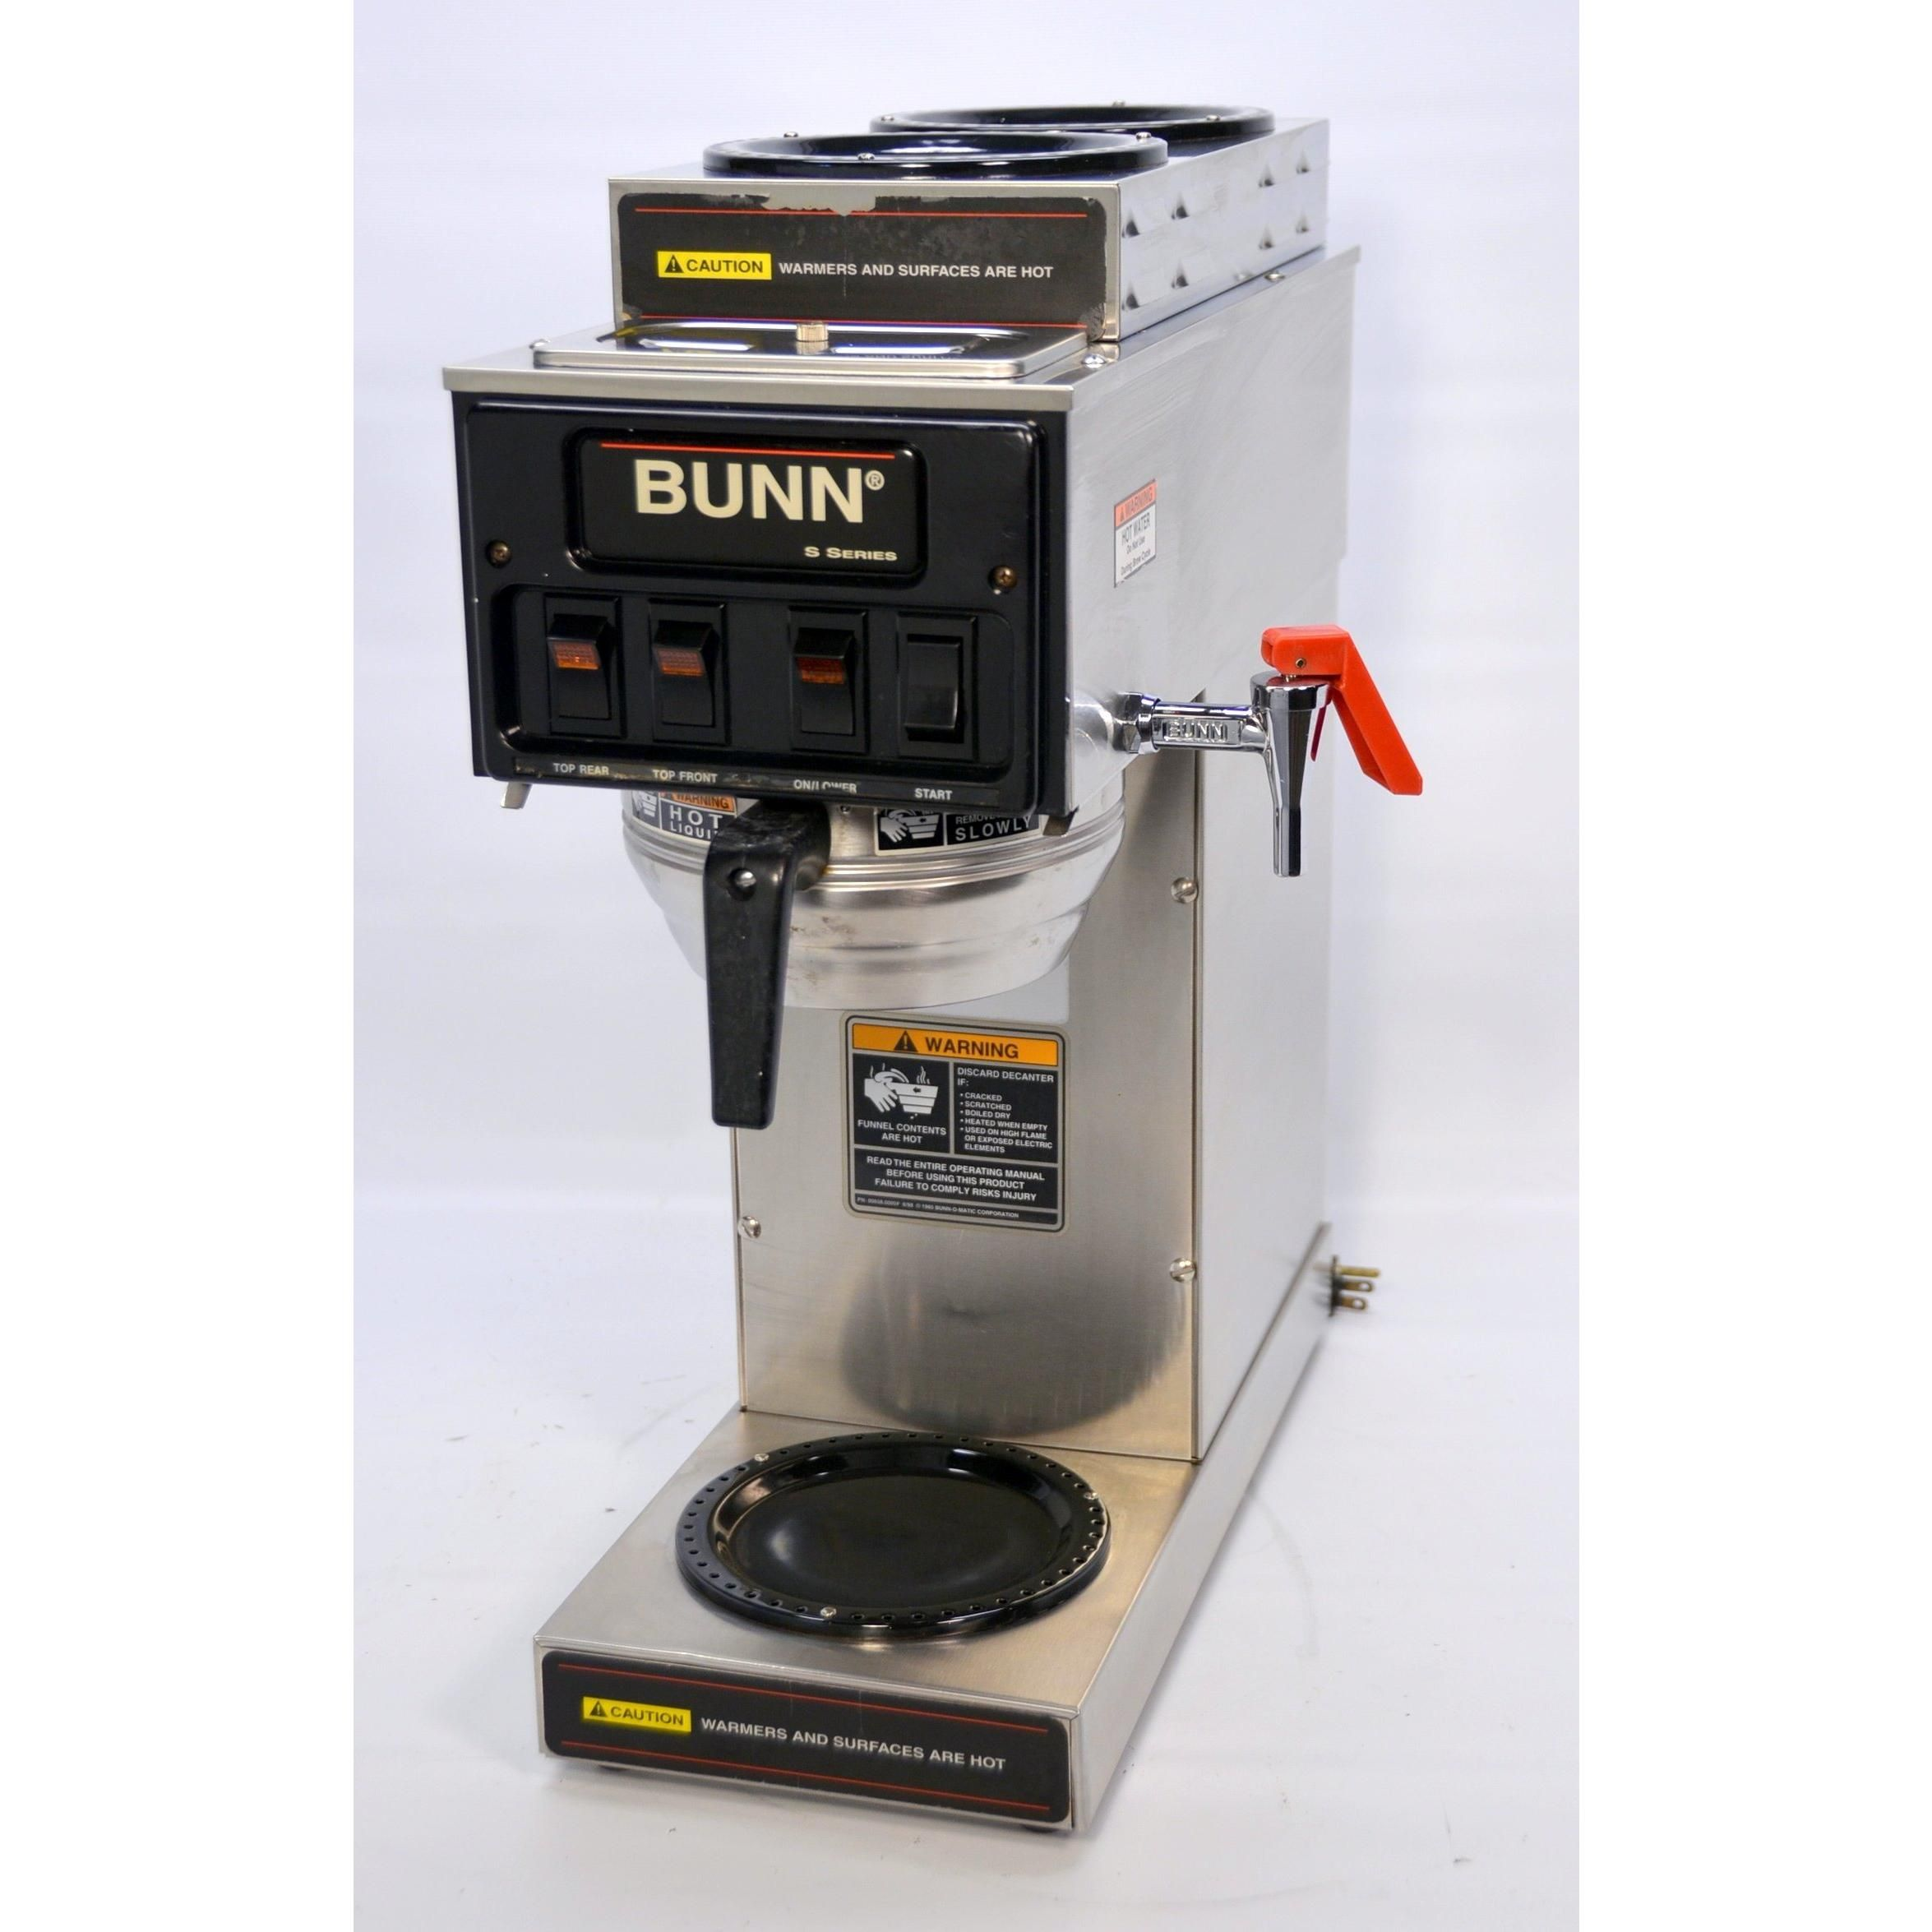 Bunn Stf 20 Coffee Maker Wiring Diagram Schematic Diagrams Commercial Brewer Machine 12 Cup Automatic Parts Breakdown